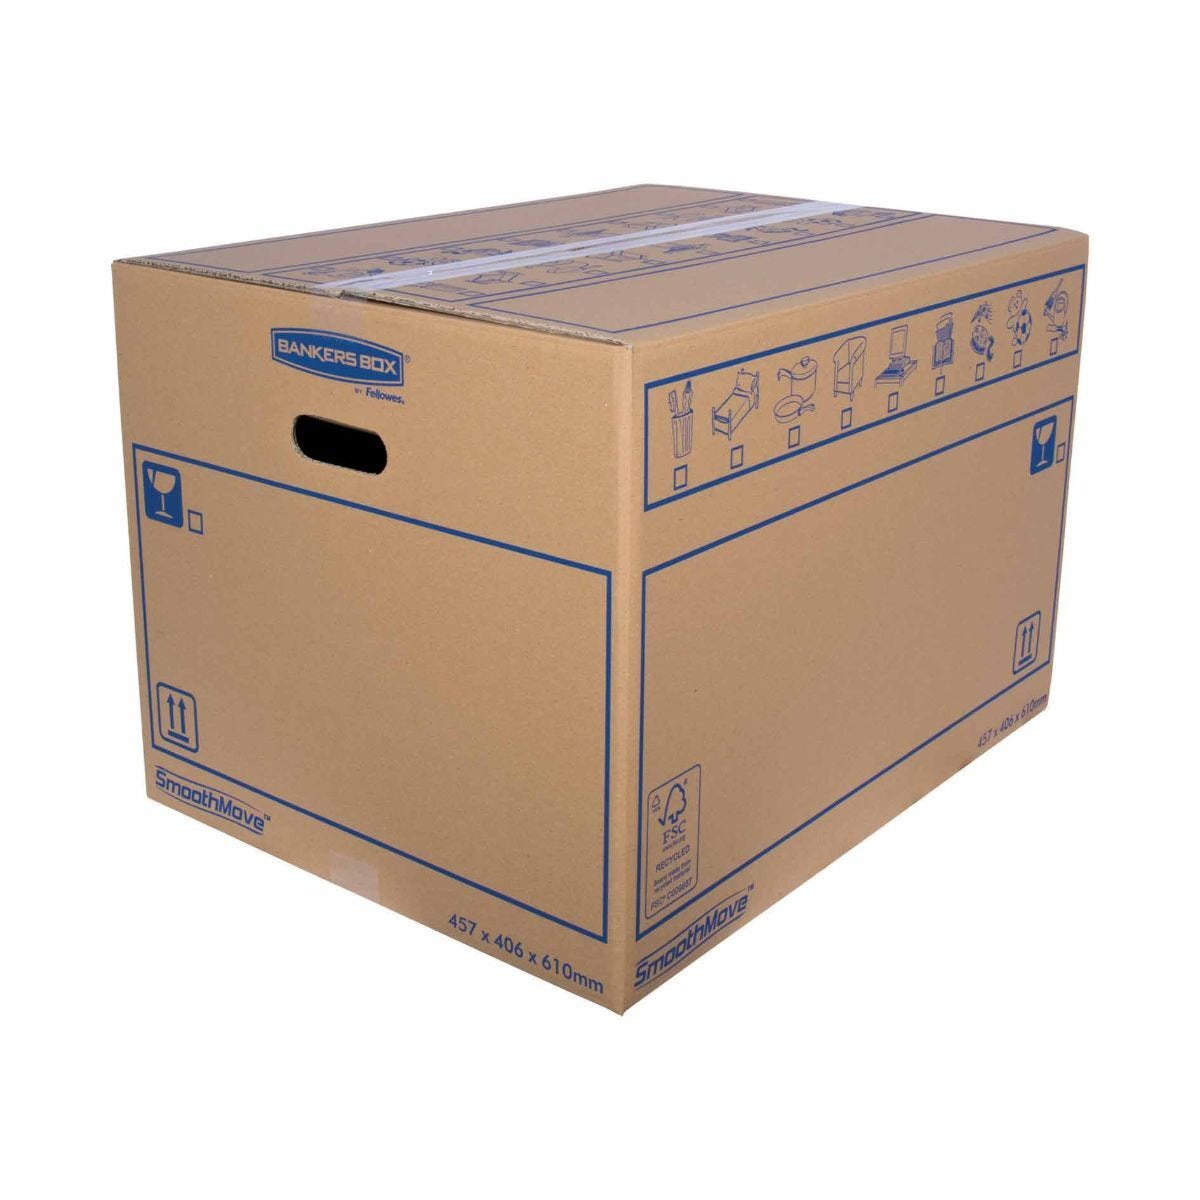 Bankers Box by Fellowes SmoothMove Standard Box Large Pack of 10